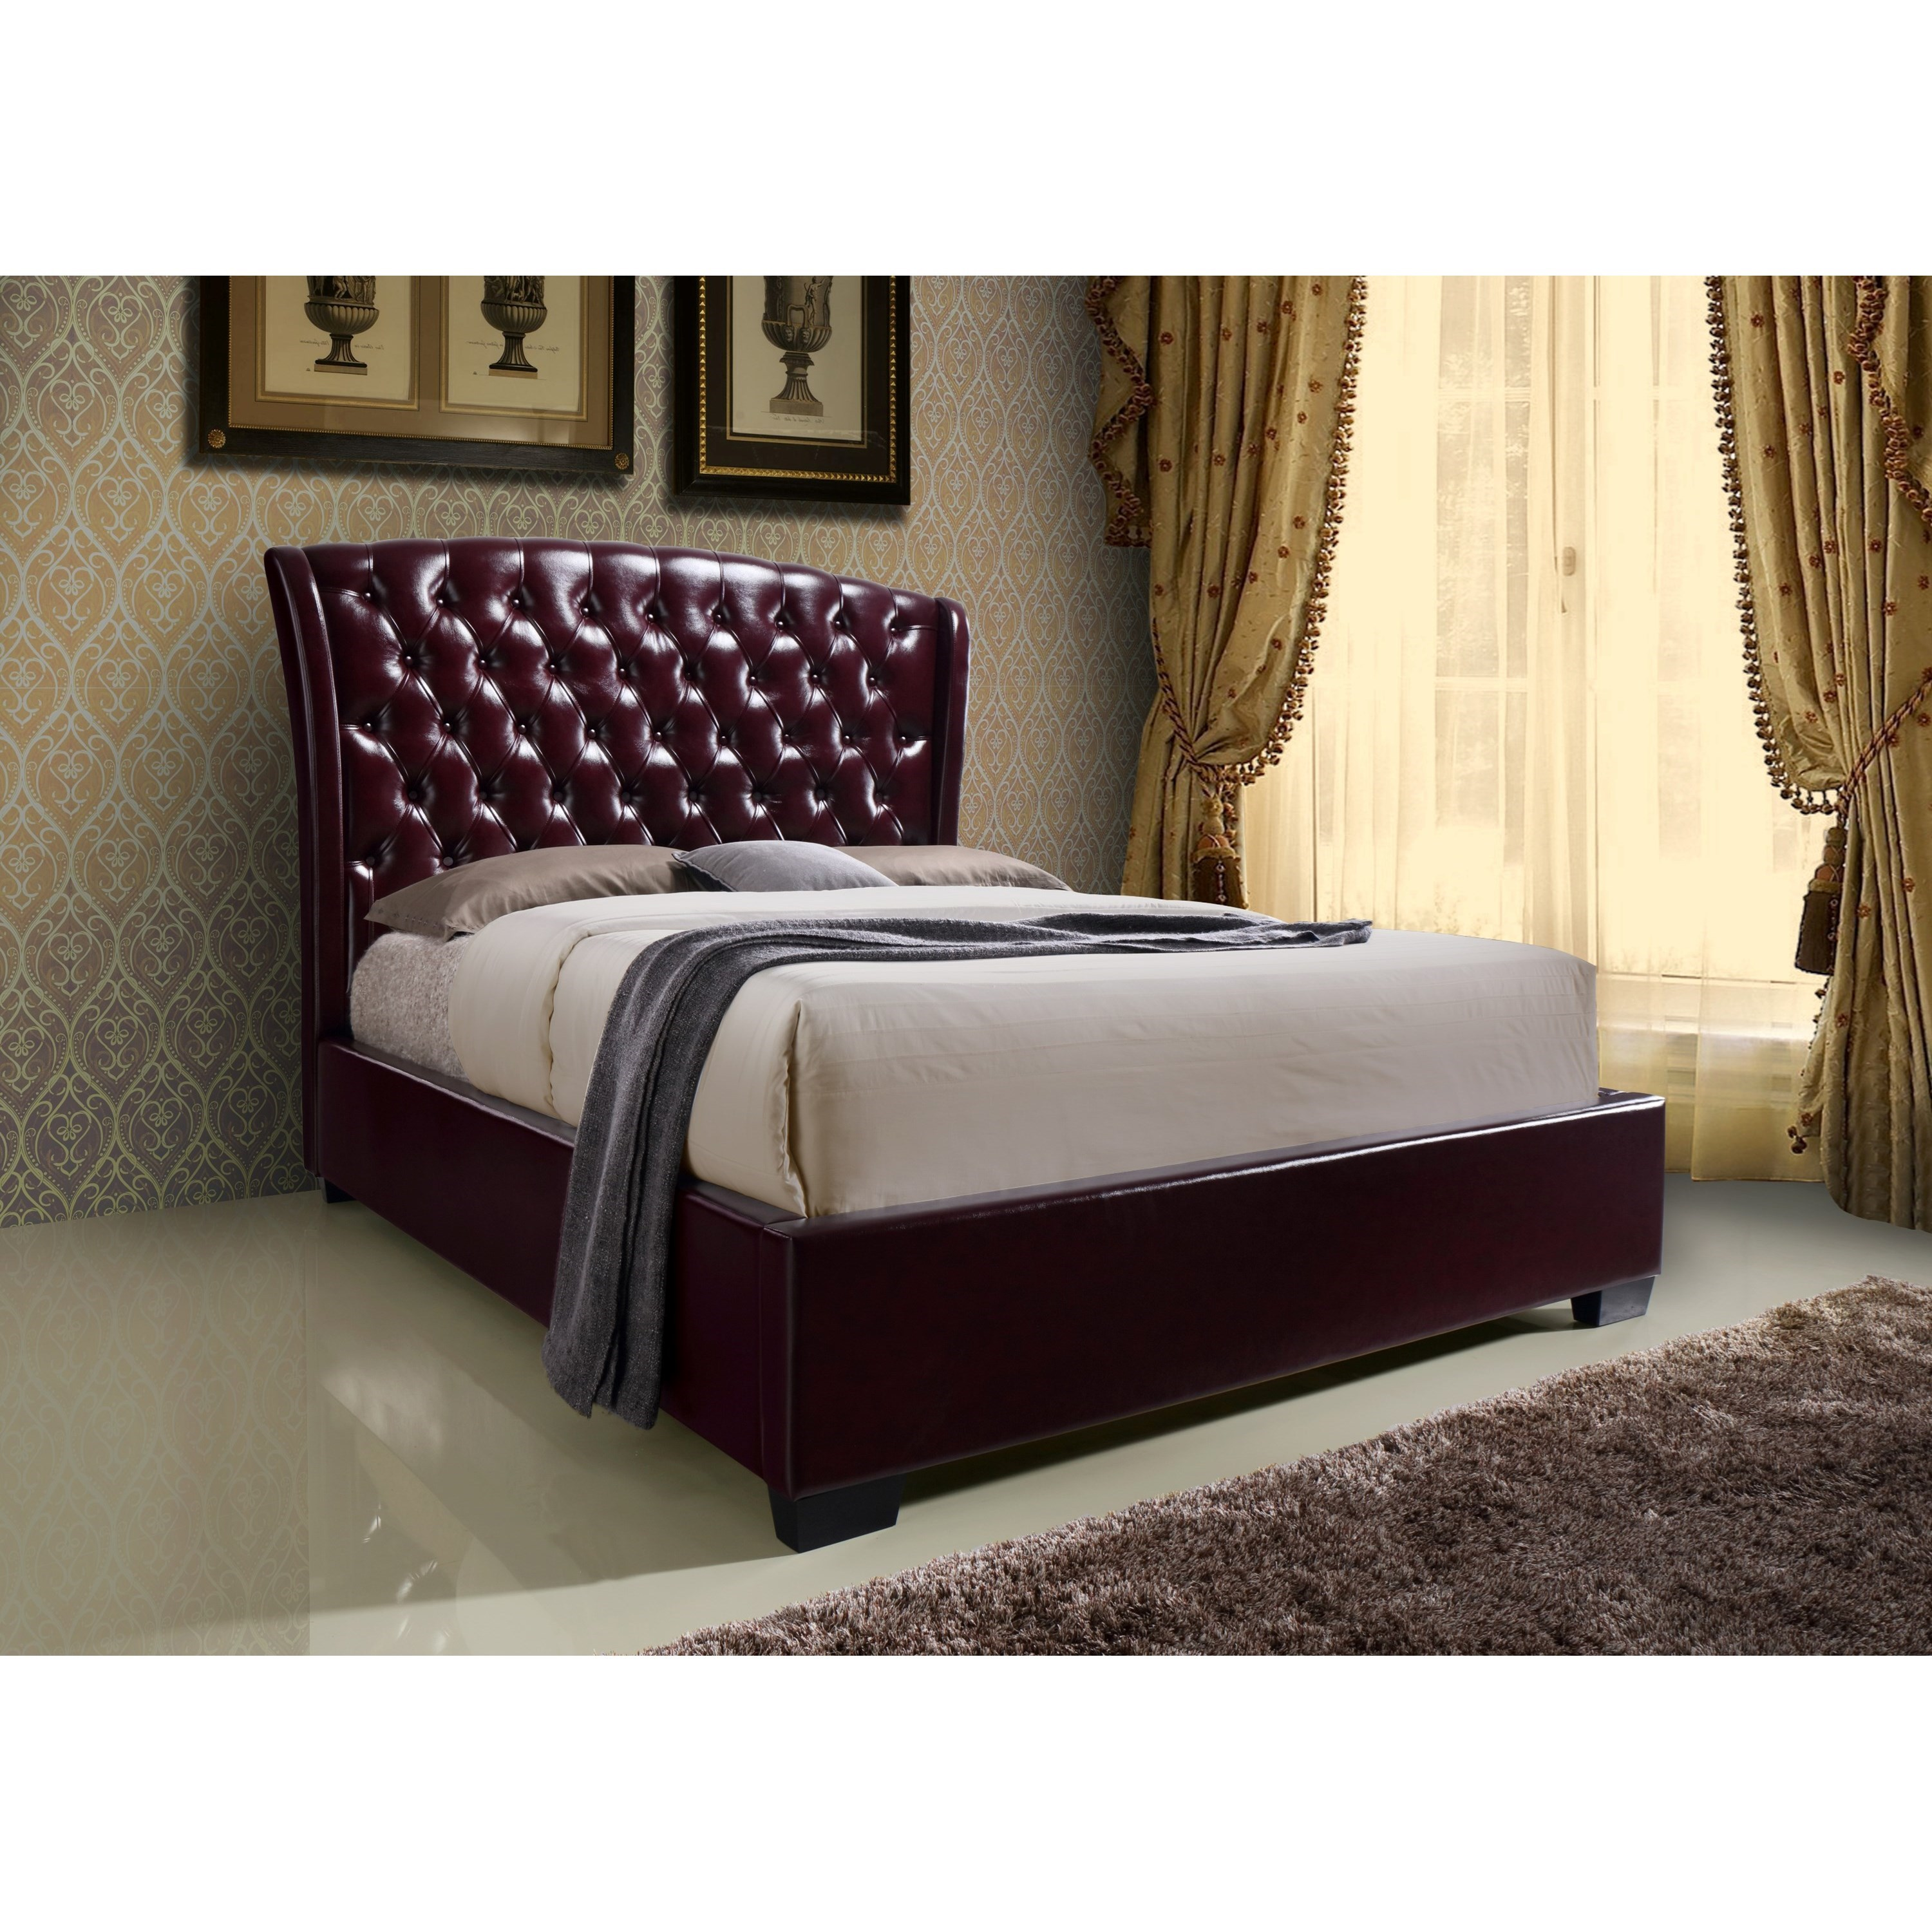 Crown Mark Kaitlyn Wine Queen Headboard and Footboard Bed - Item Number: 5276-Q-HB-WN+FB-WN+RAIL-WN